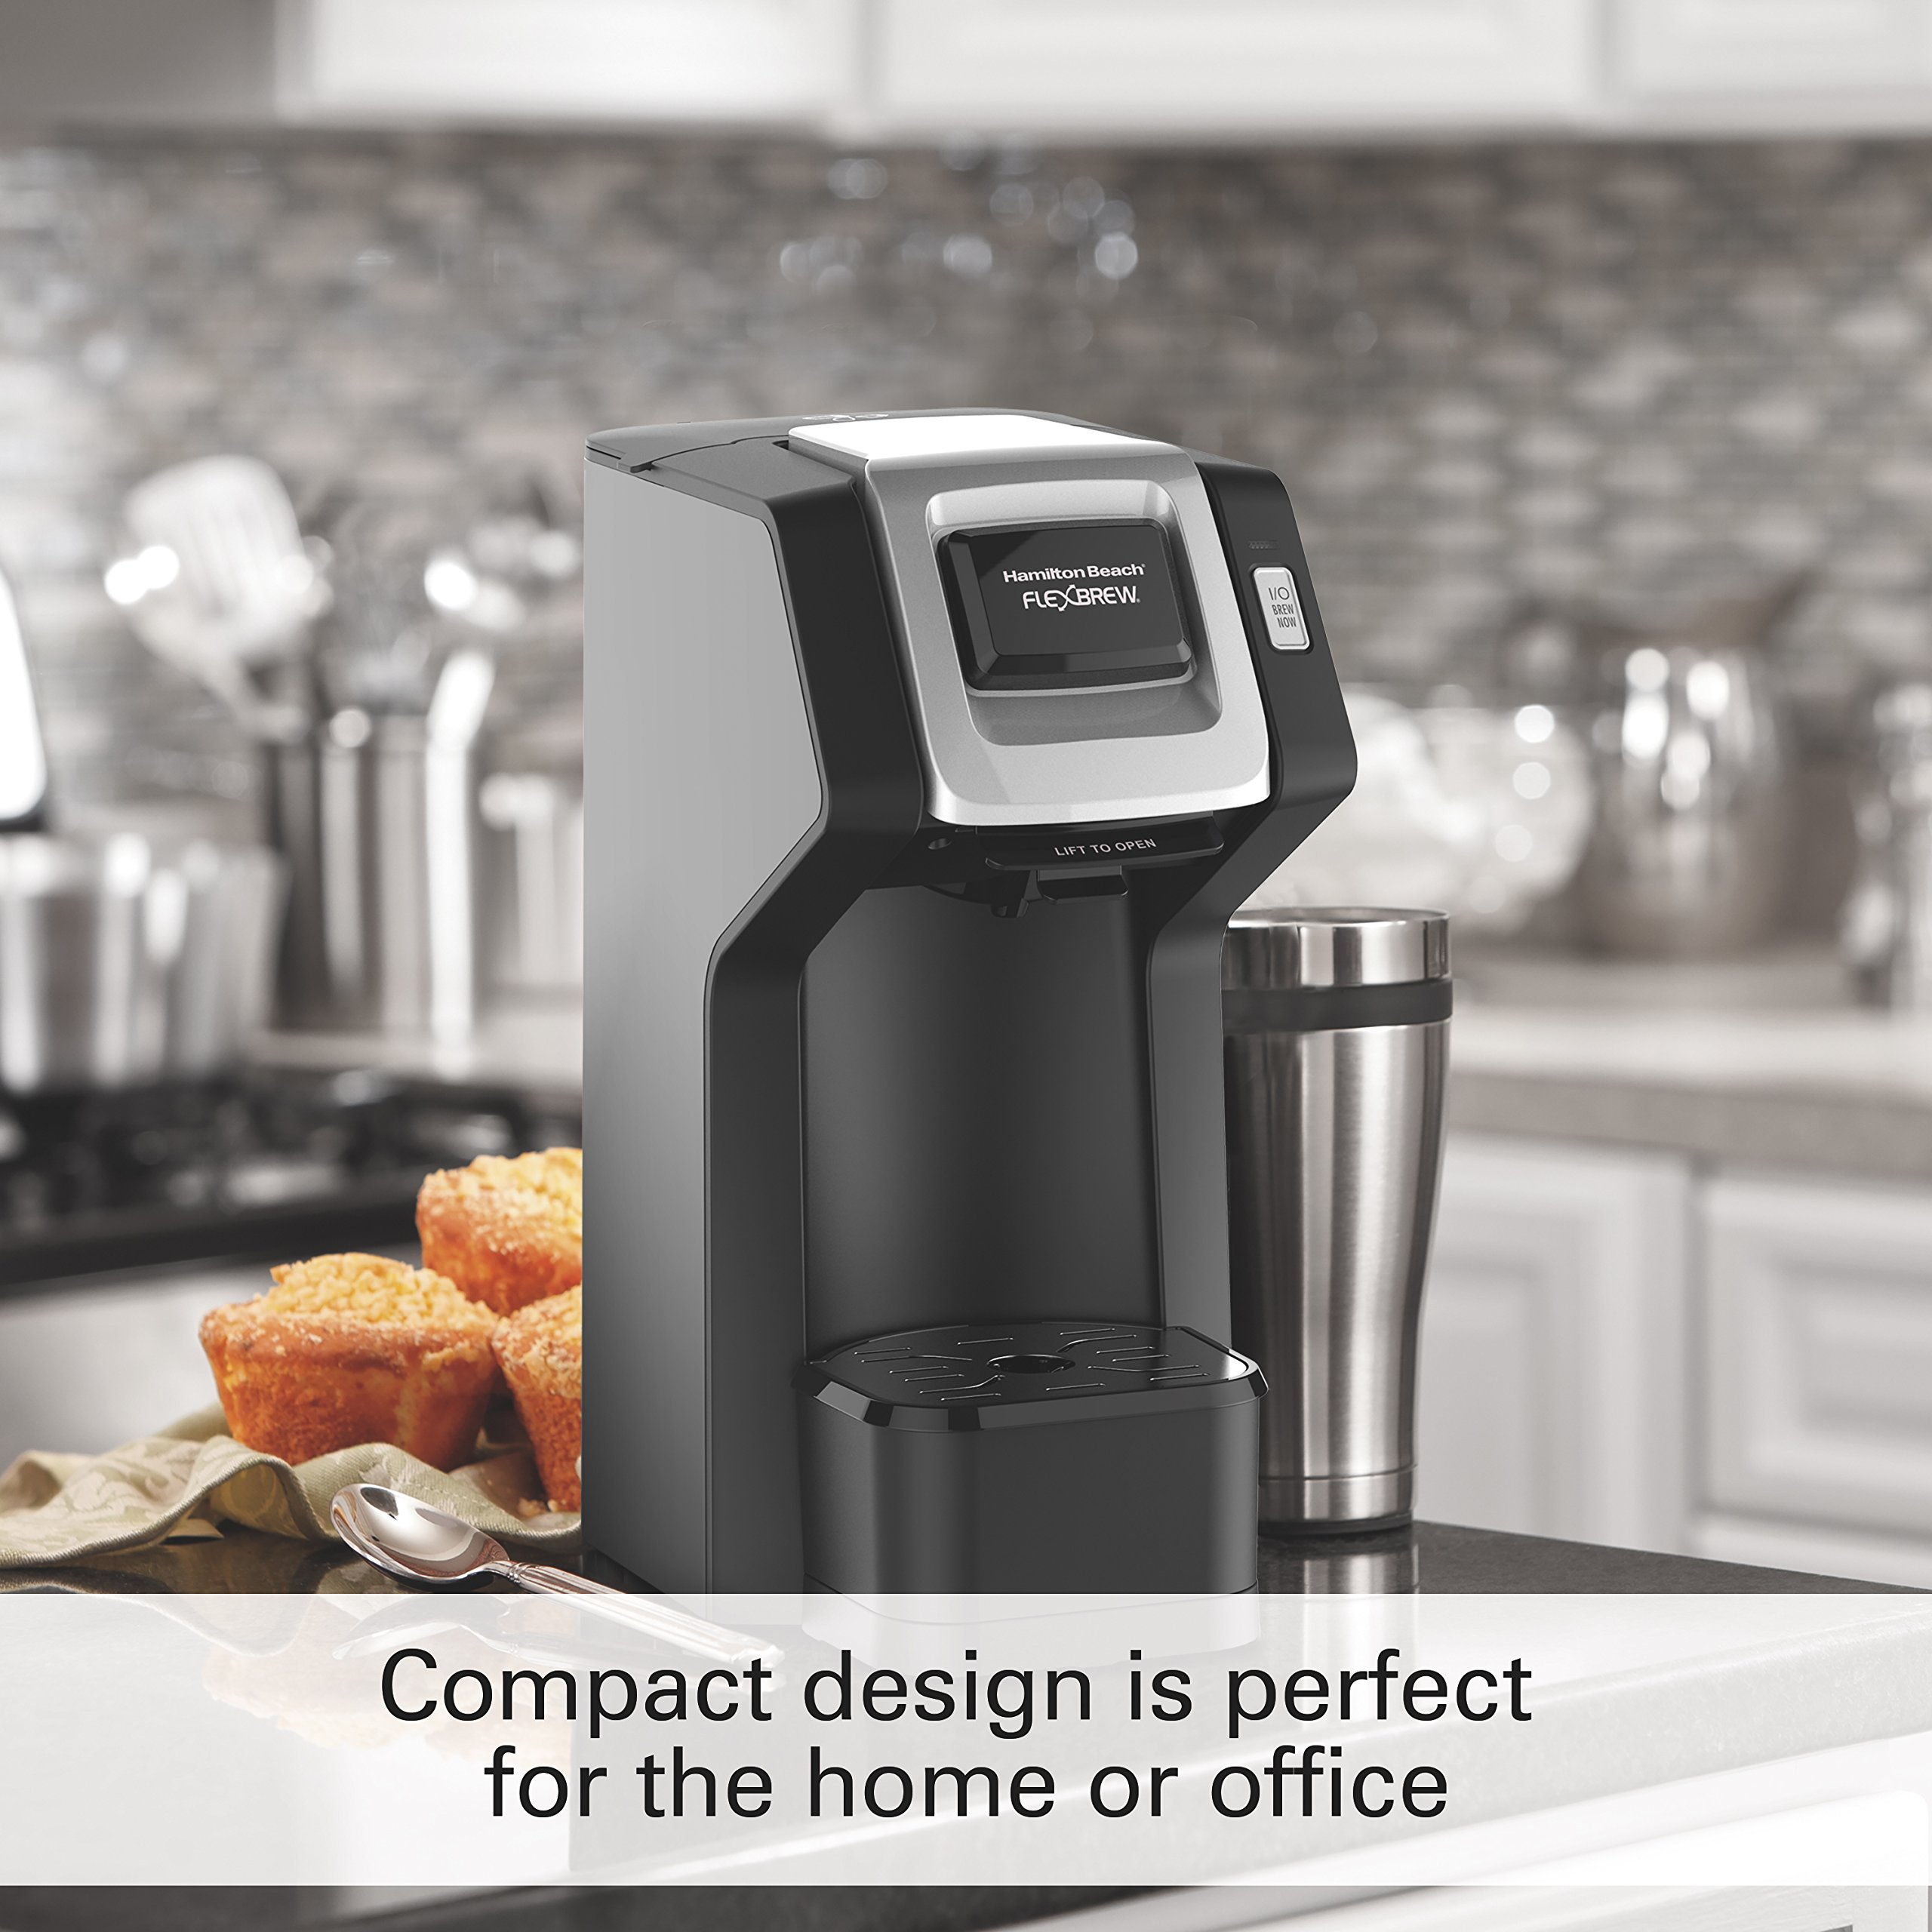 Hamilton Beach (49974) Single Serve Coffee Maker,Compatible withK-Cup Packs and Ground Coffee, Flexbrew, Black by Hamilton Beach (Image #7)